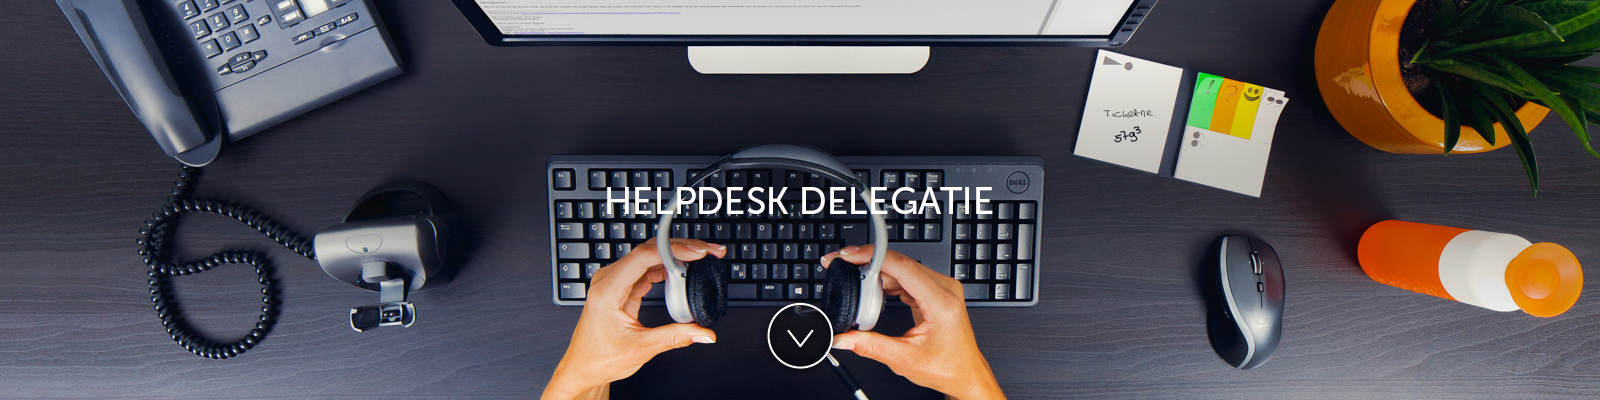 Helpdesk Delegatie (HD)